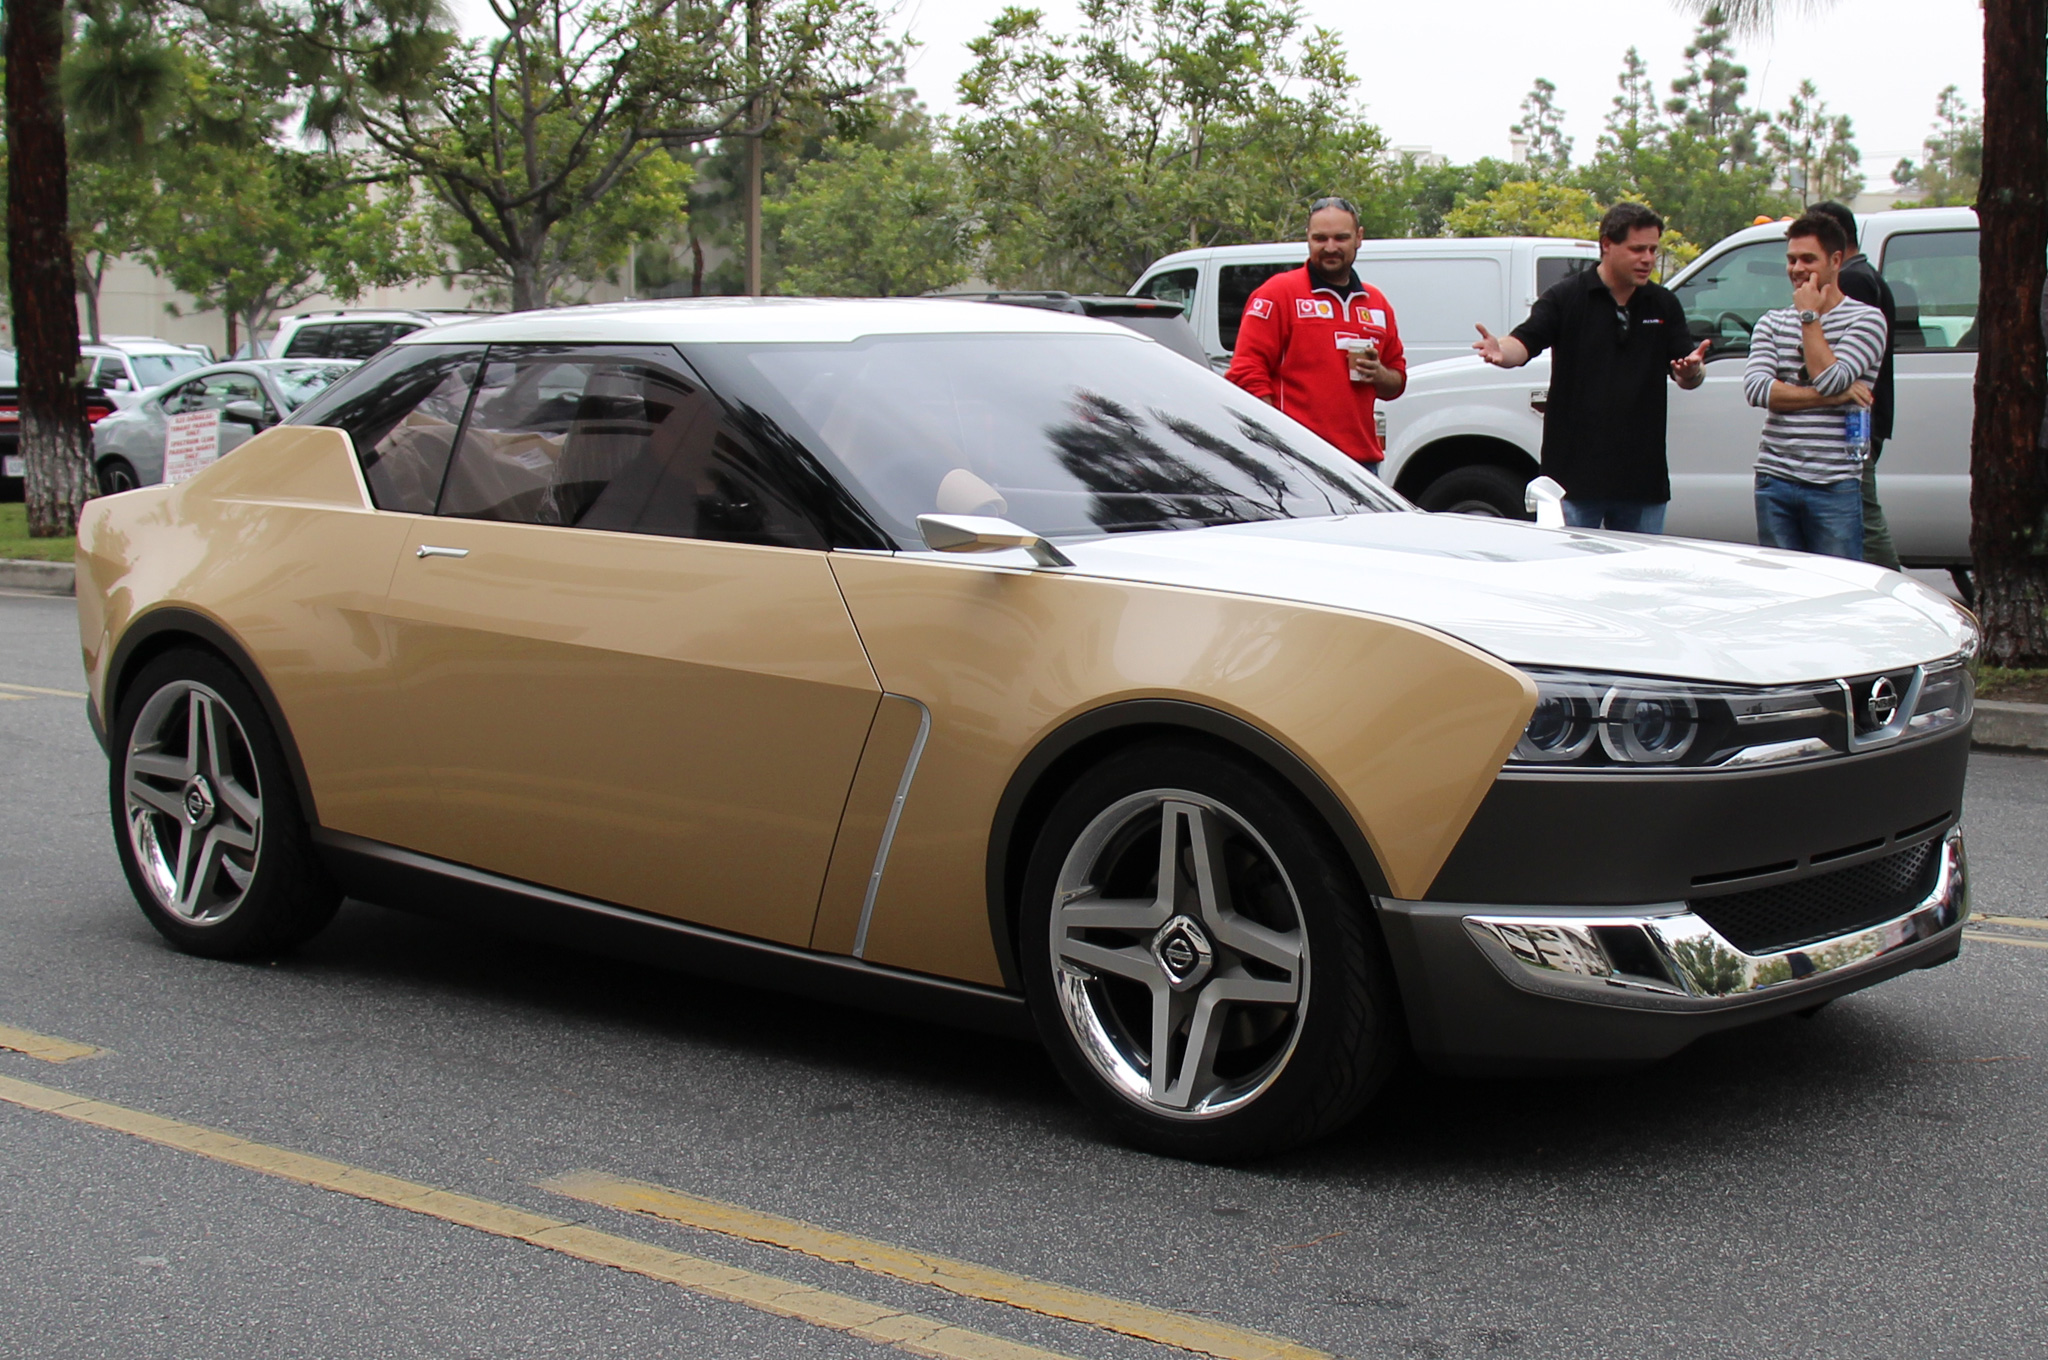 Nissan Idx Concepts Look Even Better In The Sun Motor Trend